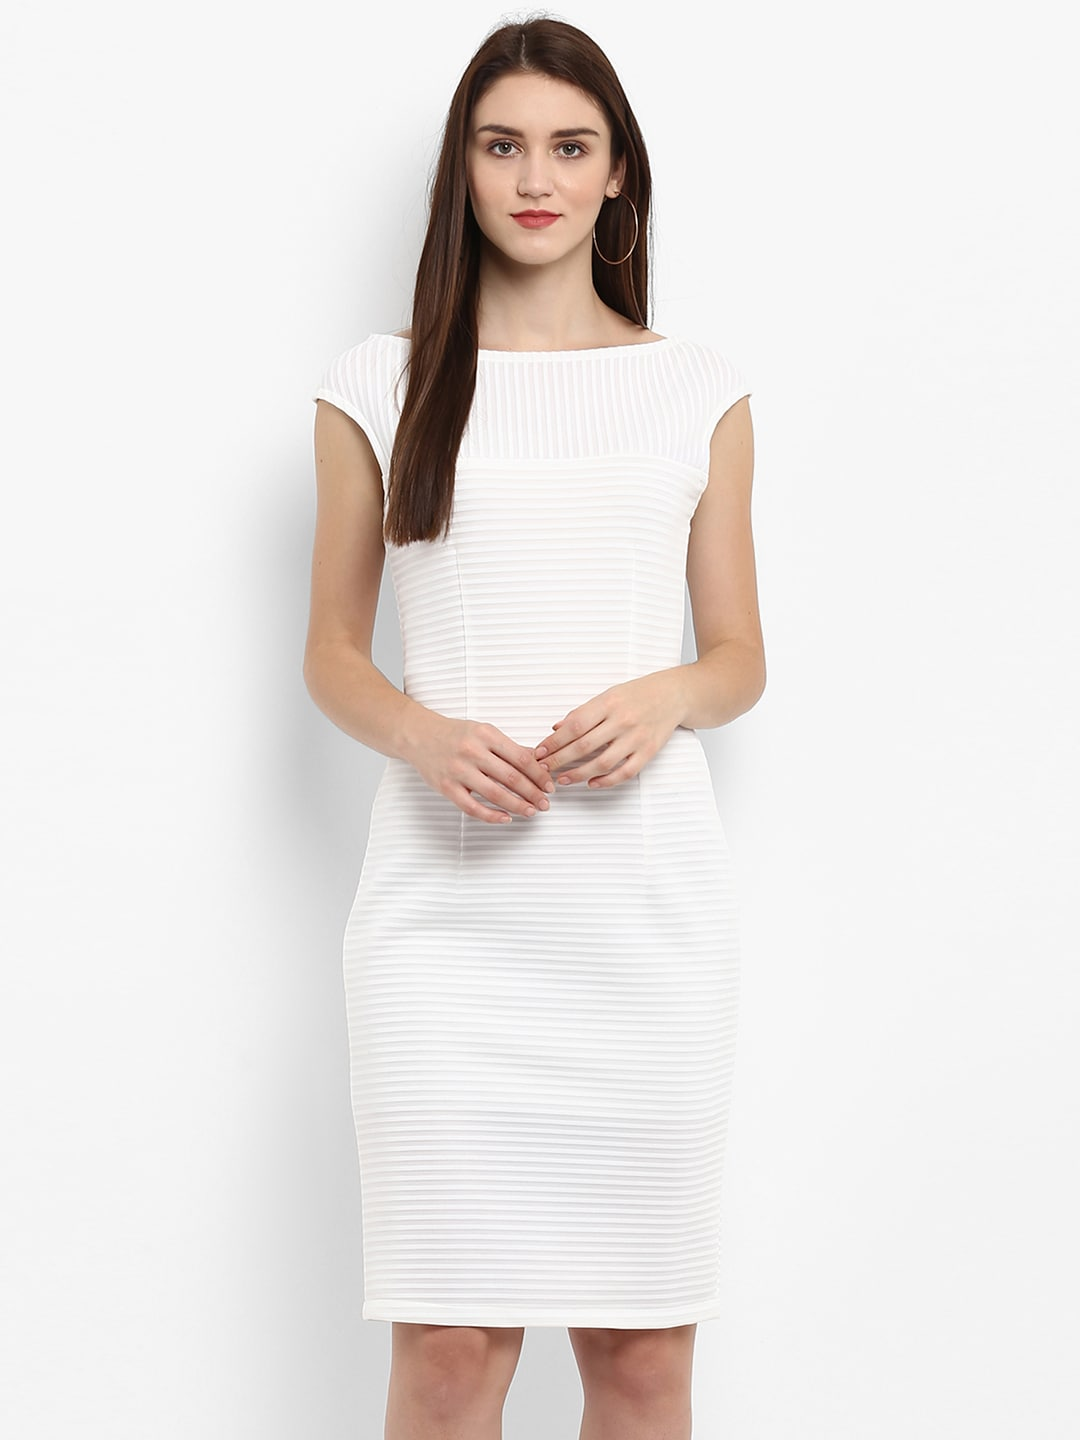 010b8c5012 White Dress - Buy White Dresses from Women   Girls Online